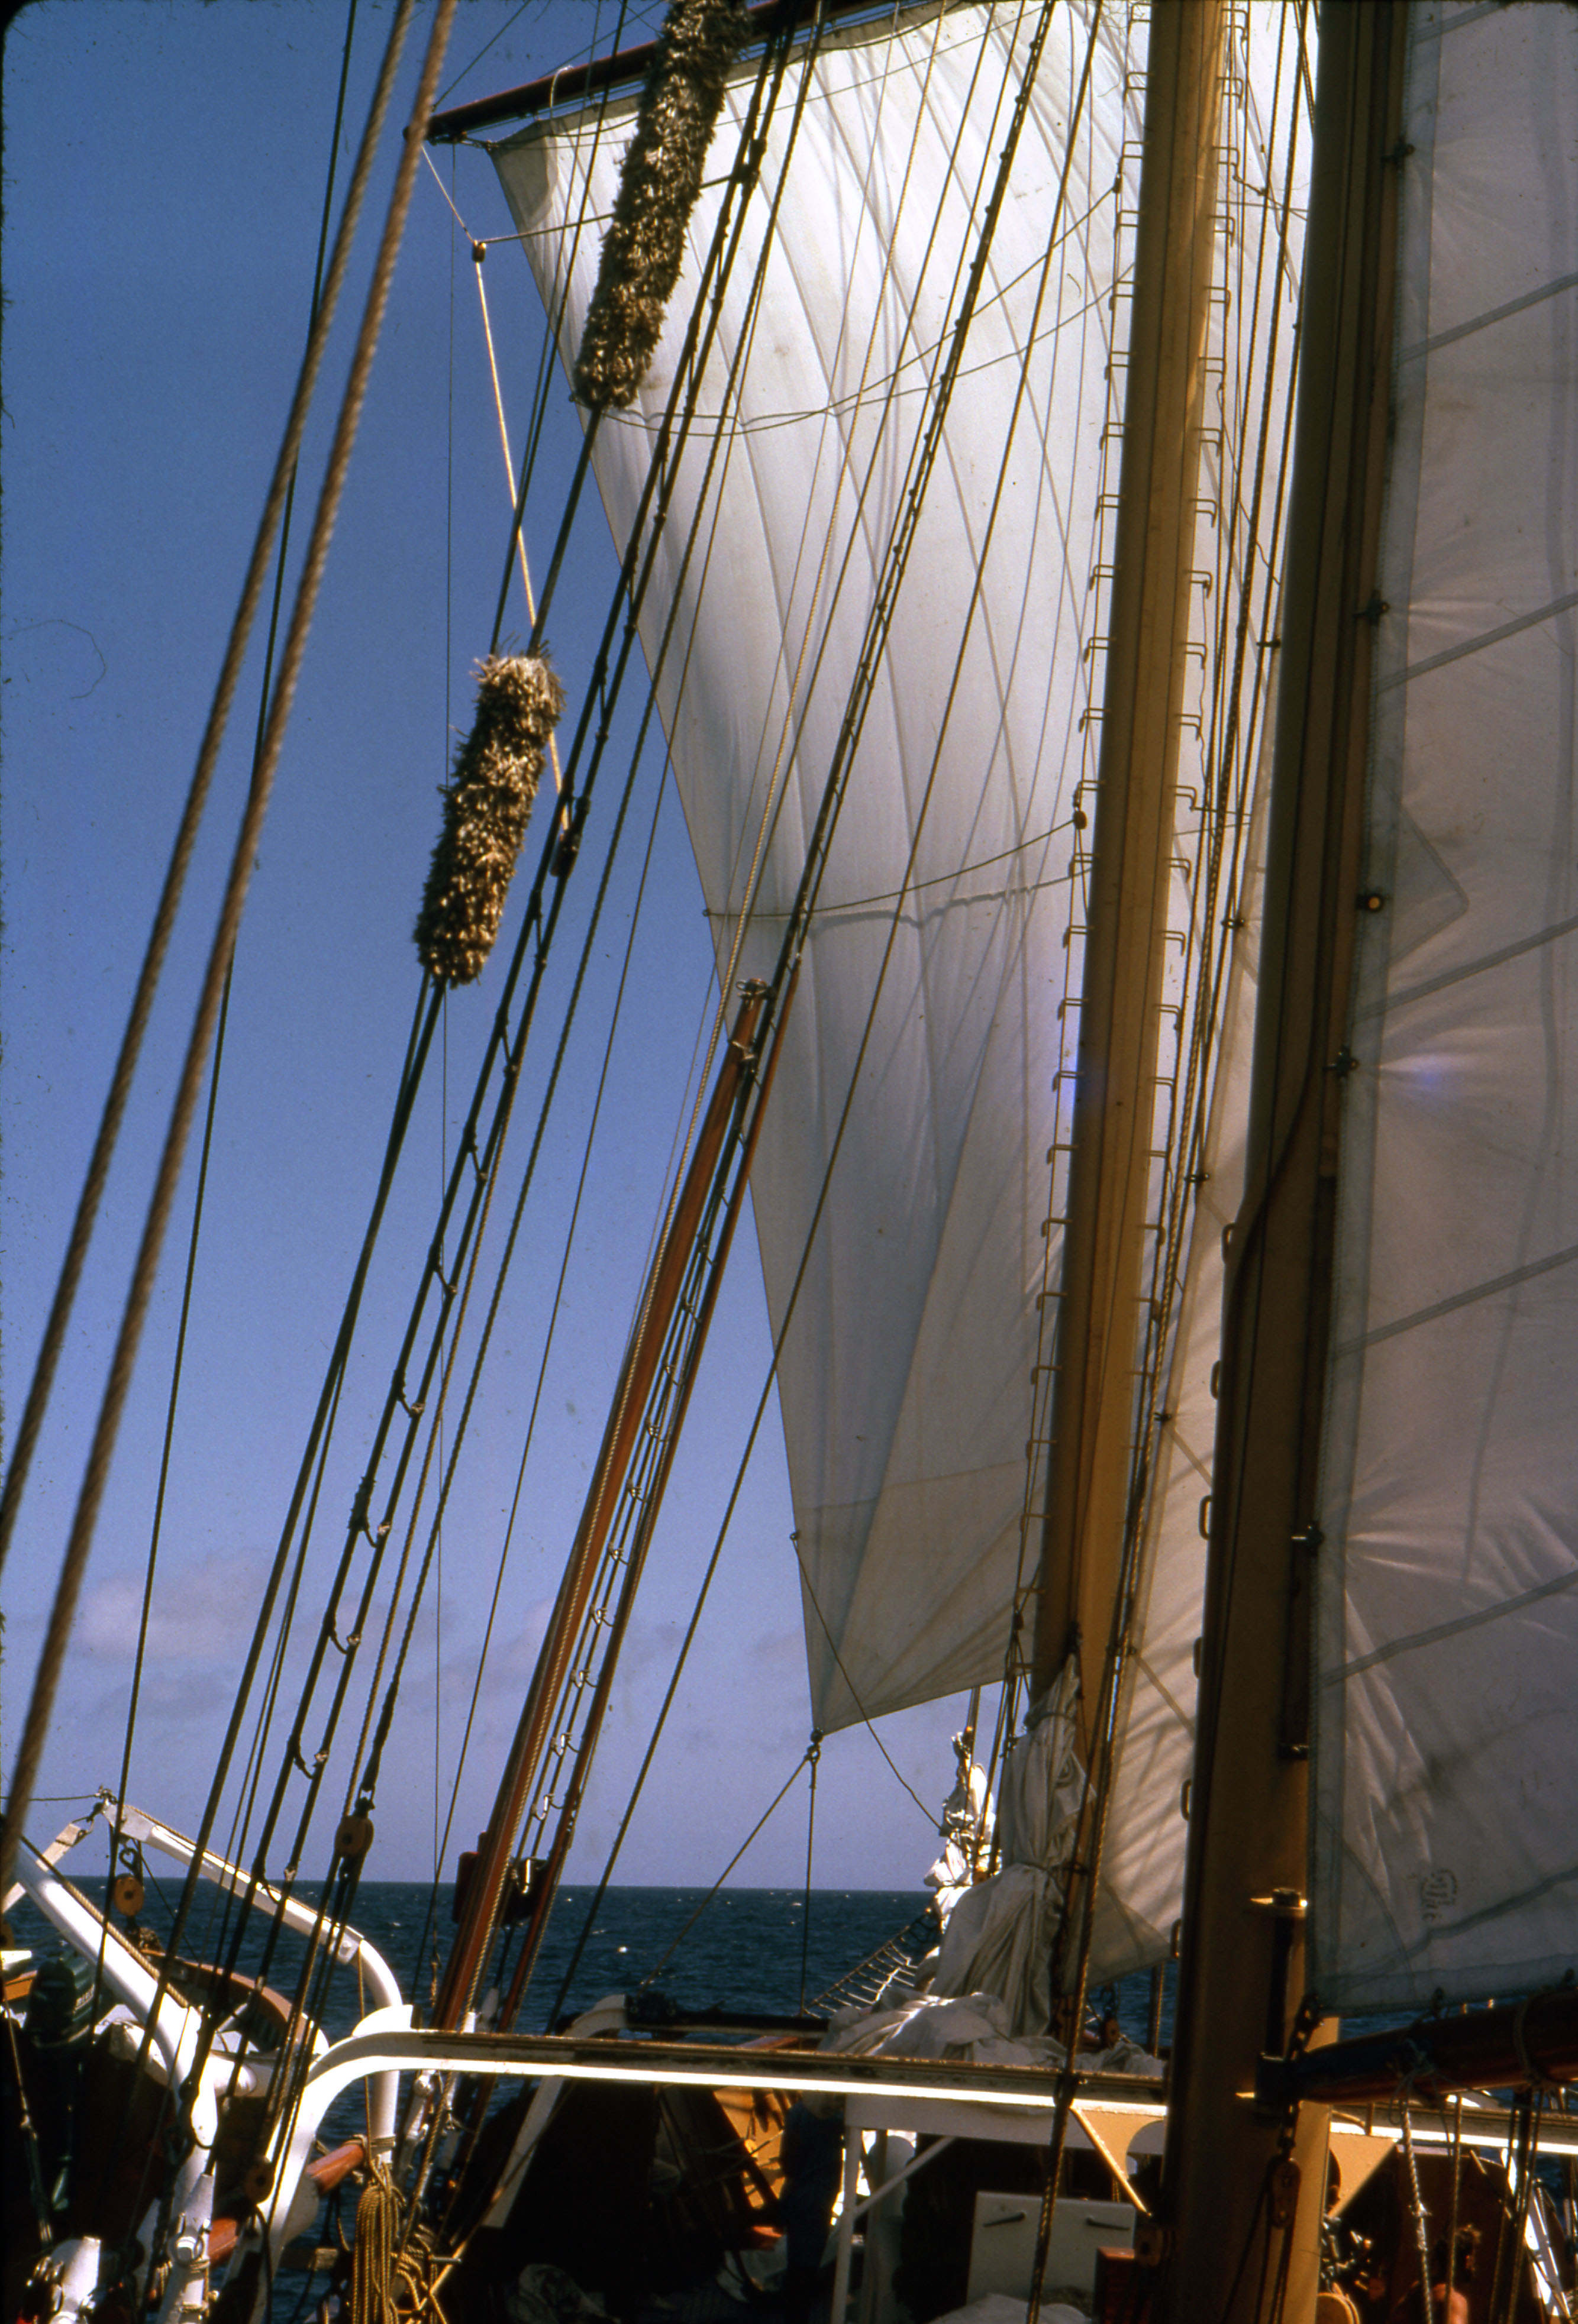 The mast and sails of a ship in the ocean around the Galapagos Islands.